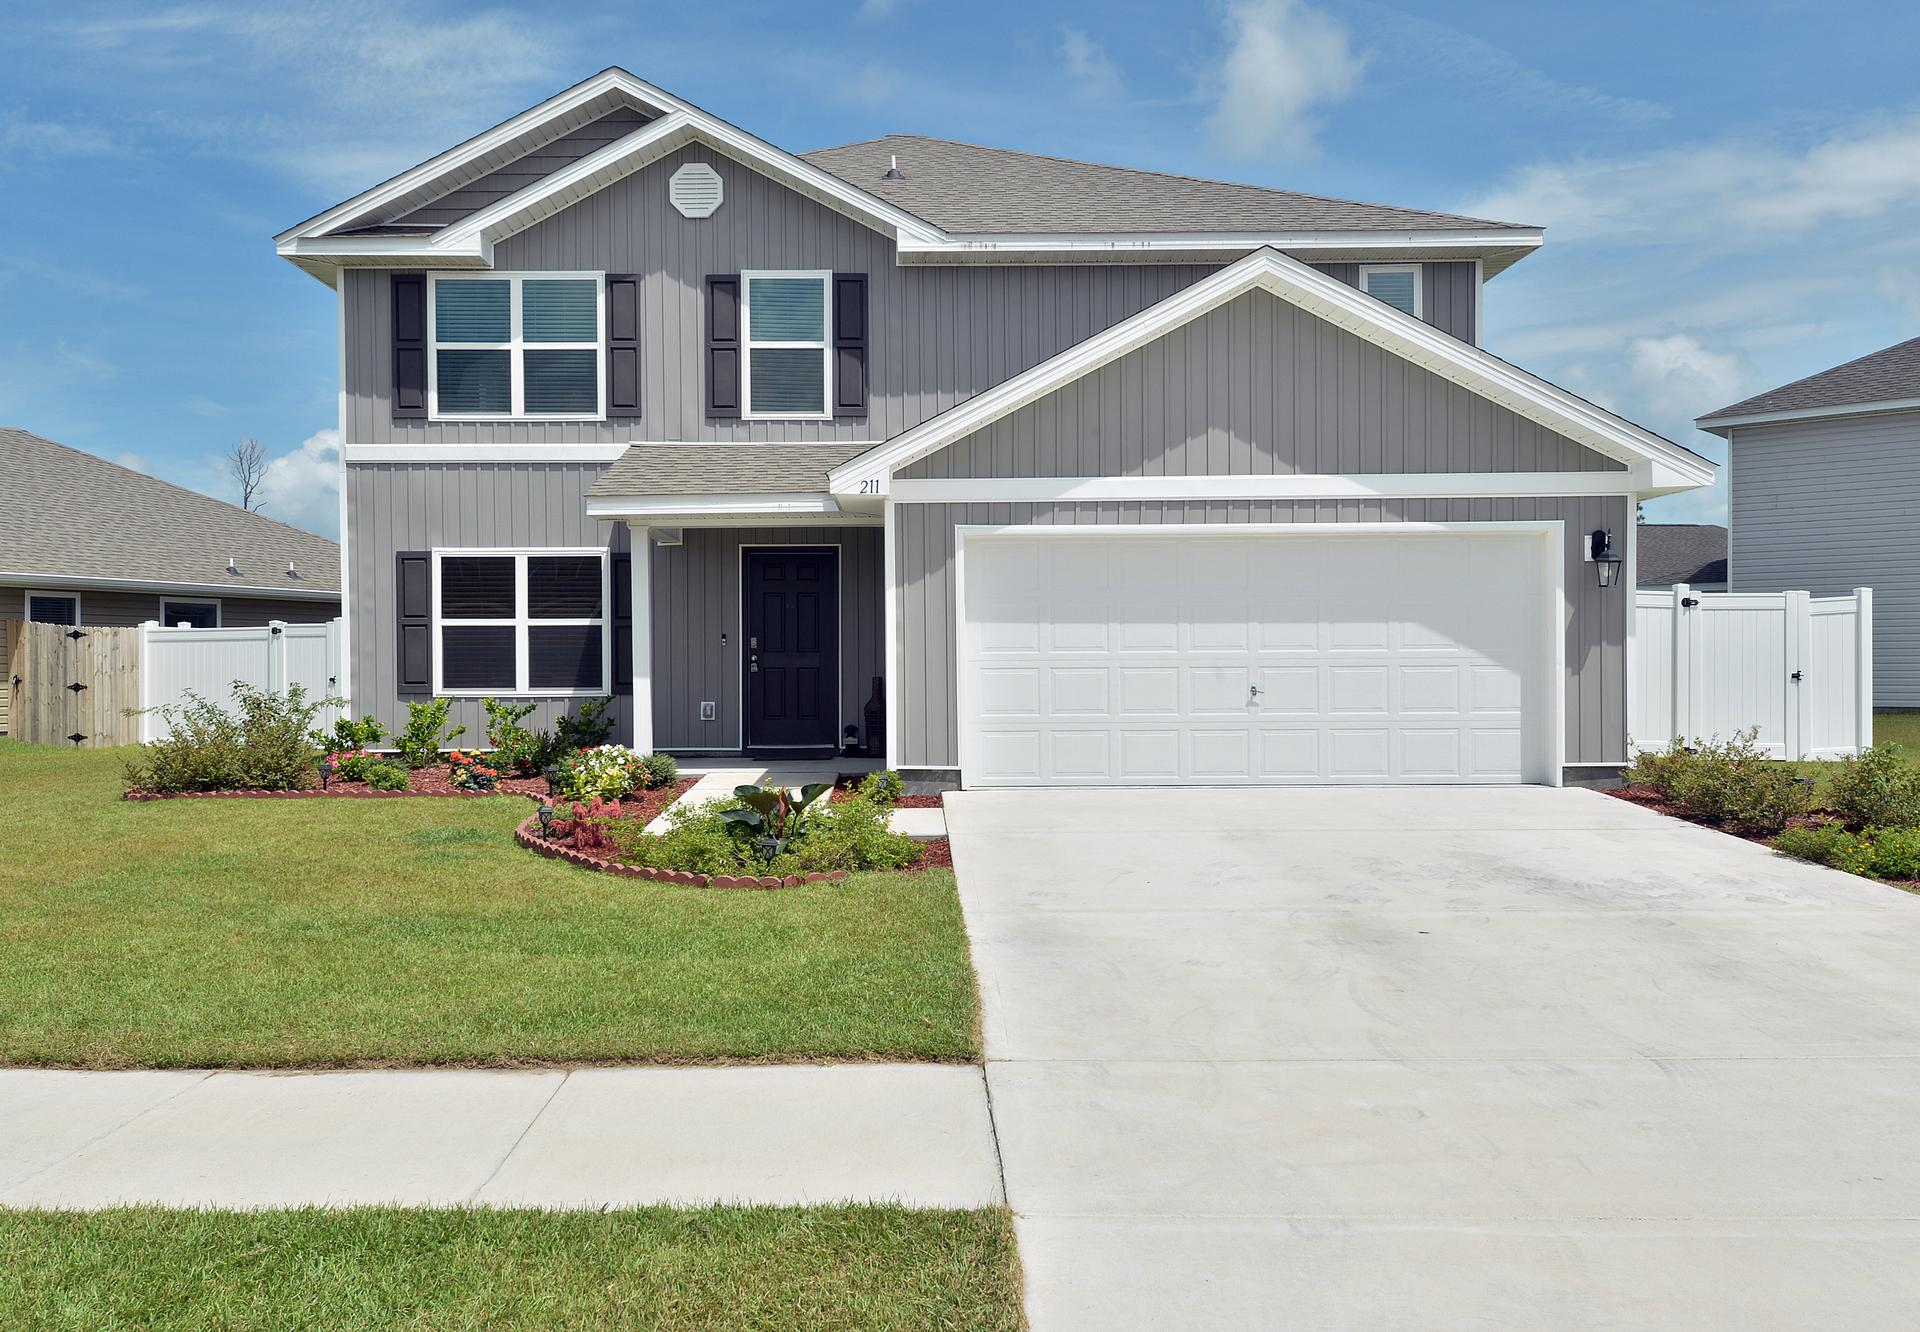 Photo of property: 211 Red Bay rd, Callaway, FL 32404